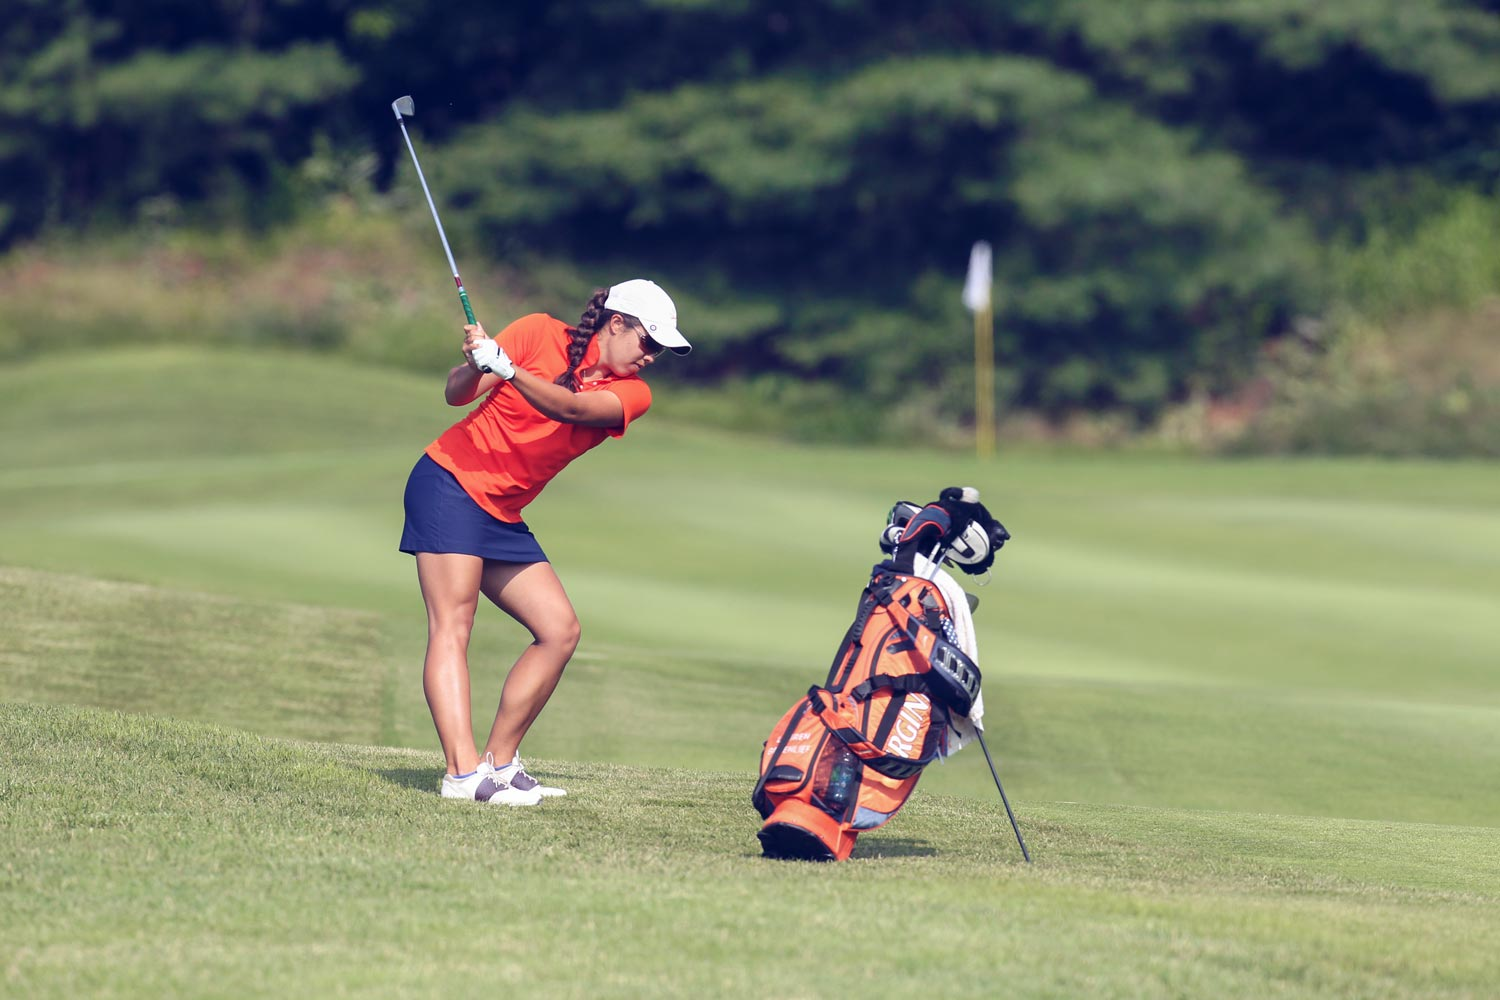 At UVA, Cavalier golfer Lauren Greenlief was an Echols Scholar, earned a spot on the ACC All-Academic Team and won three straight Virginia Women's Stroke Play Championships.